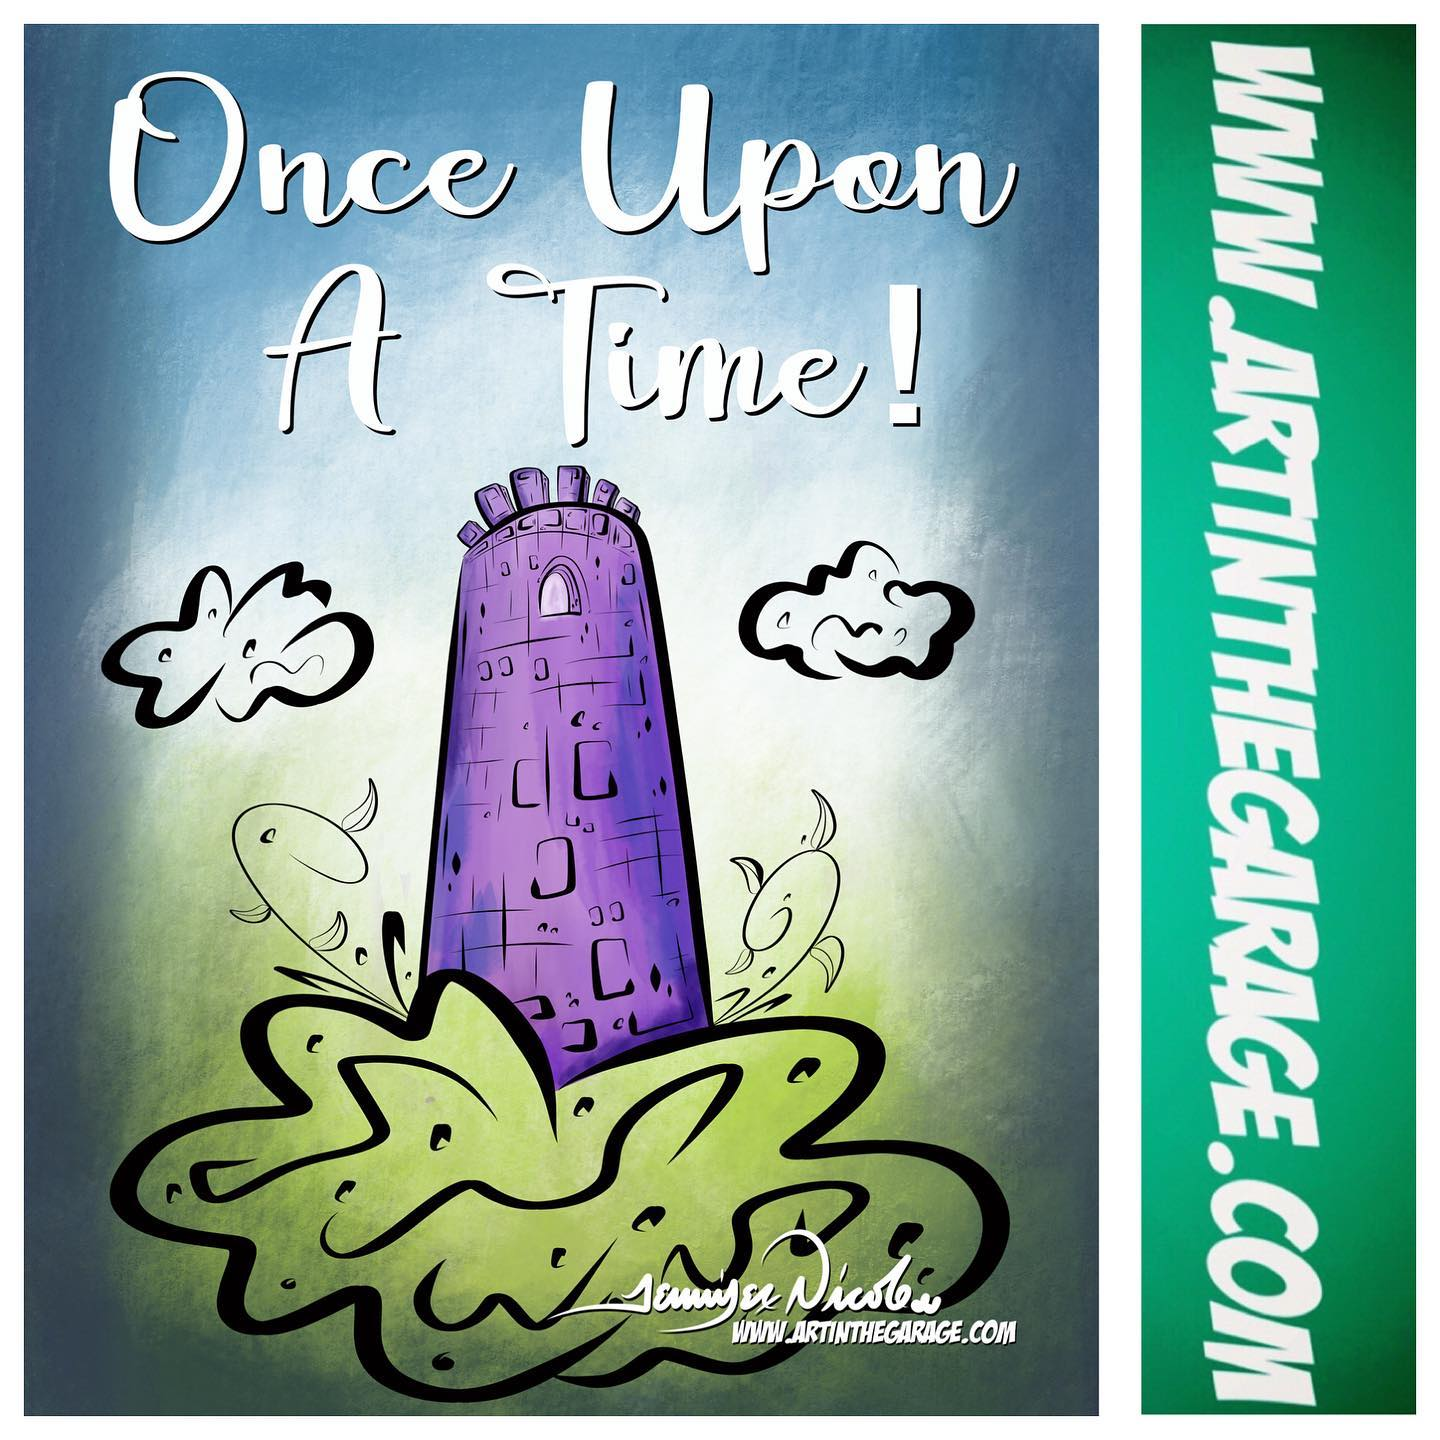 6-16-20 Once Upon A Time